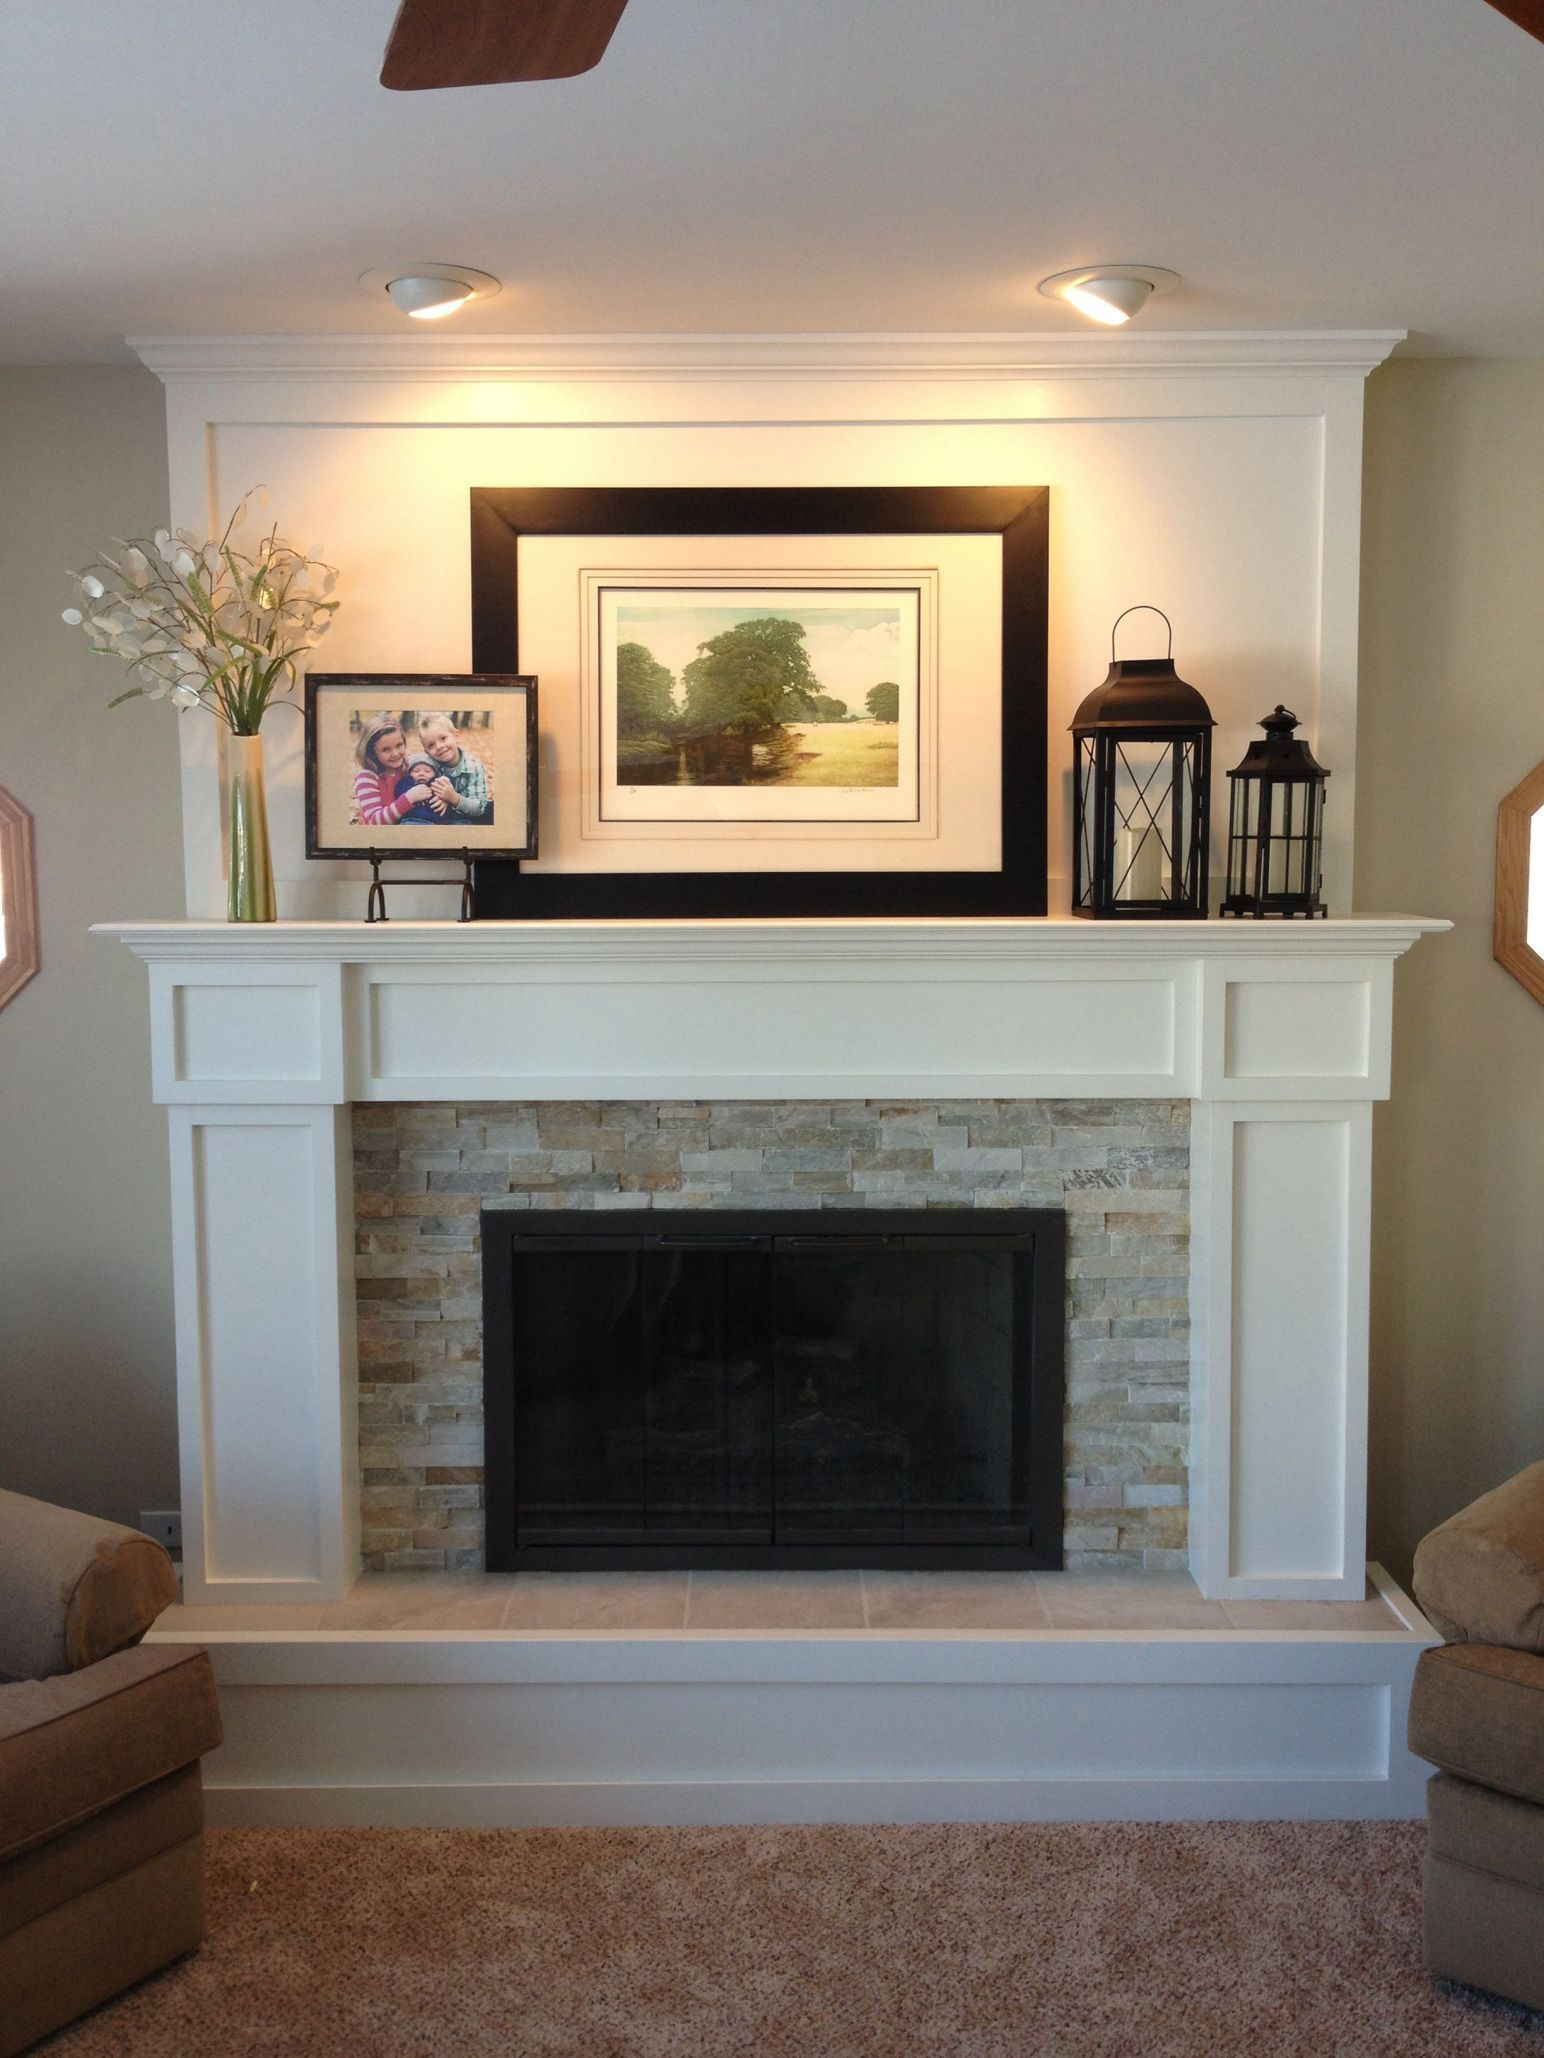 Awesome Farmhouse Fireplace Mantel Decorations 3201 Fireplace Remodel Home Fireplace Farmhouse Fireplace Mantels